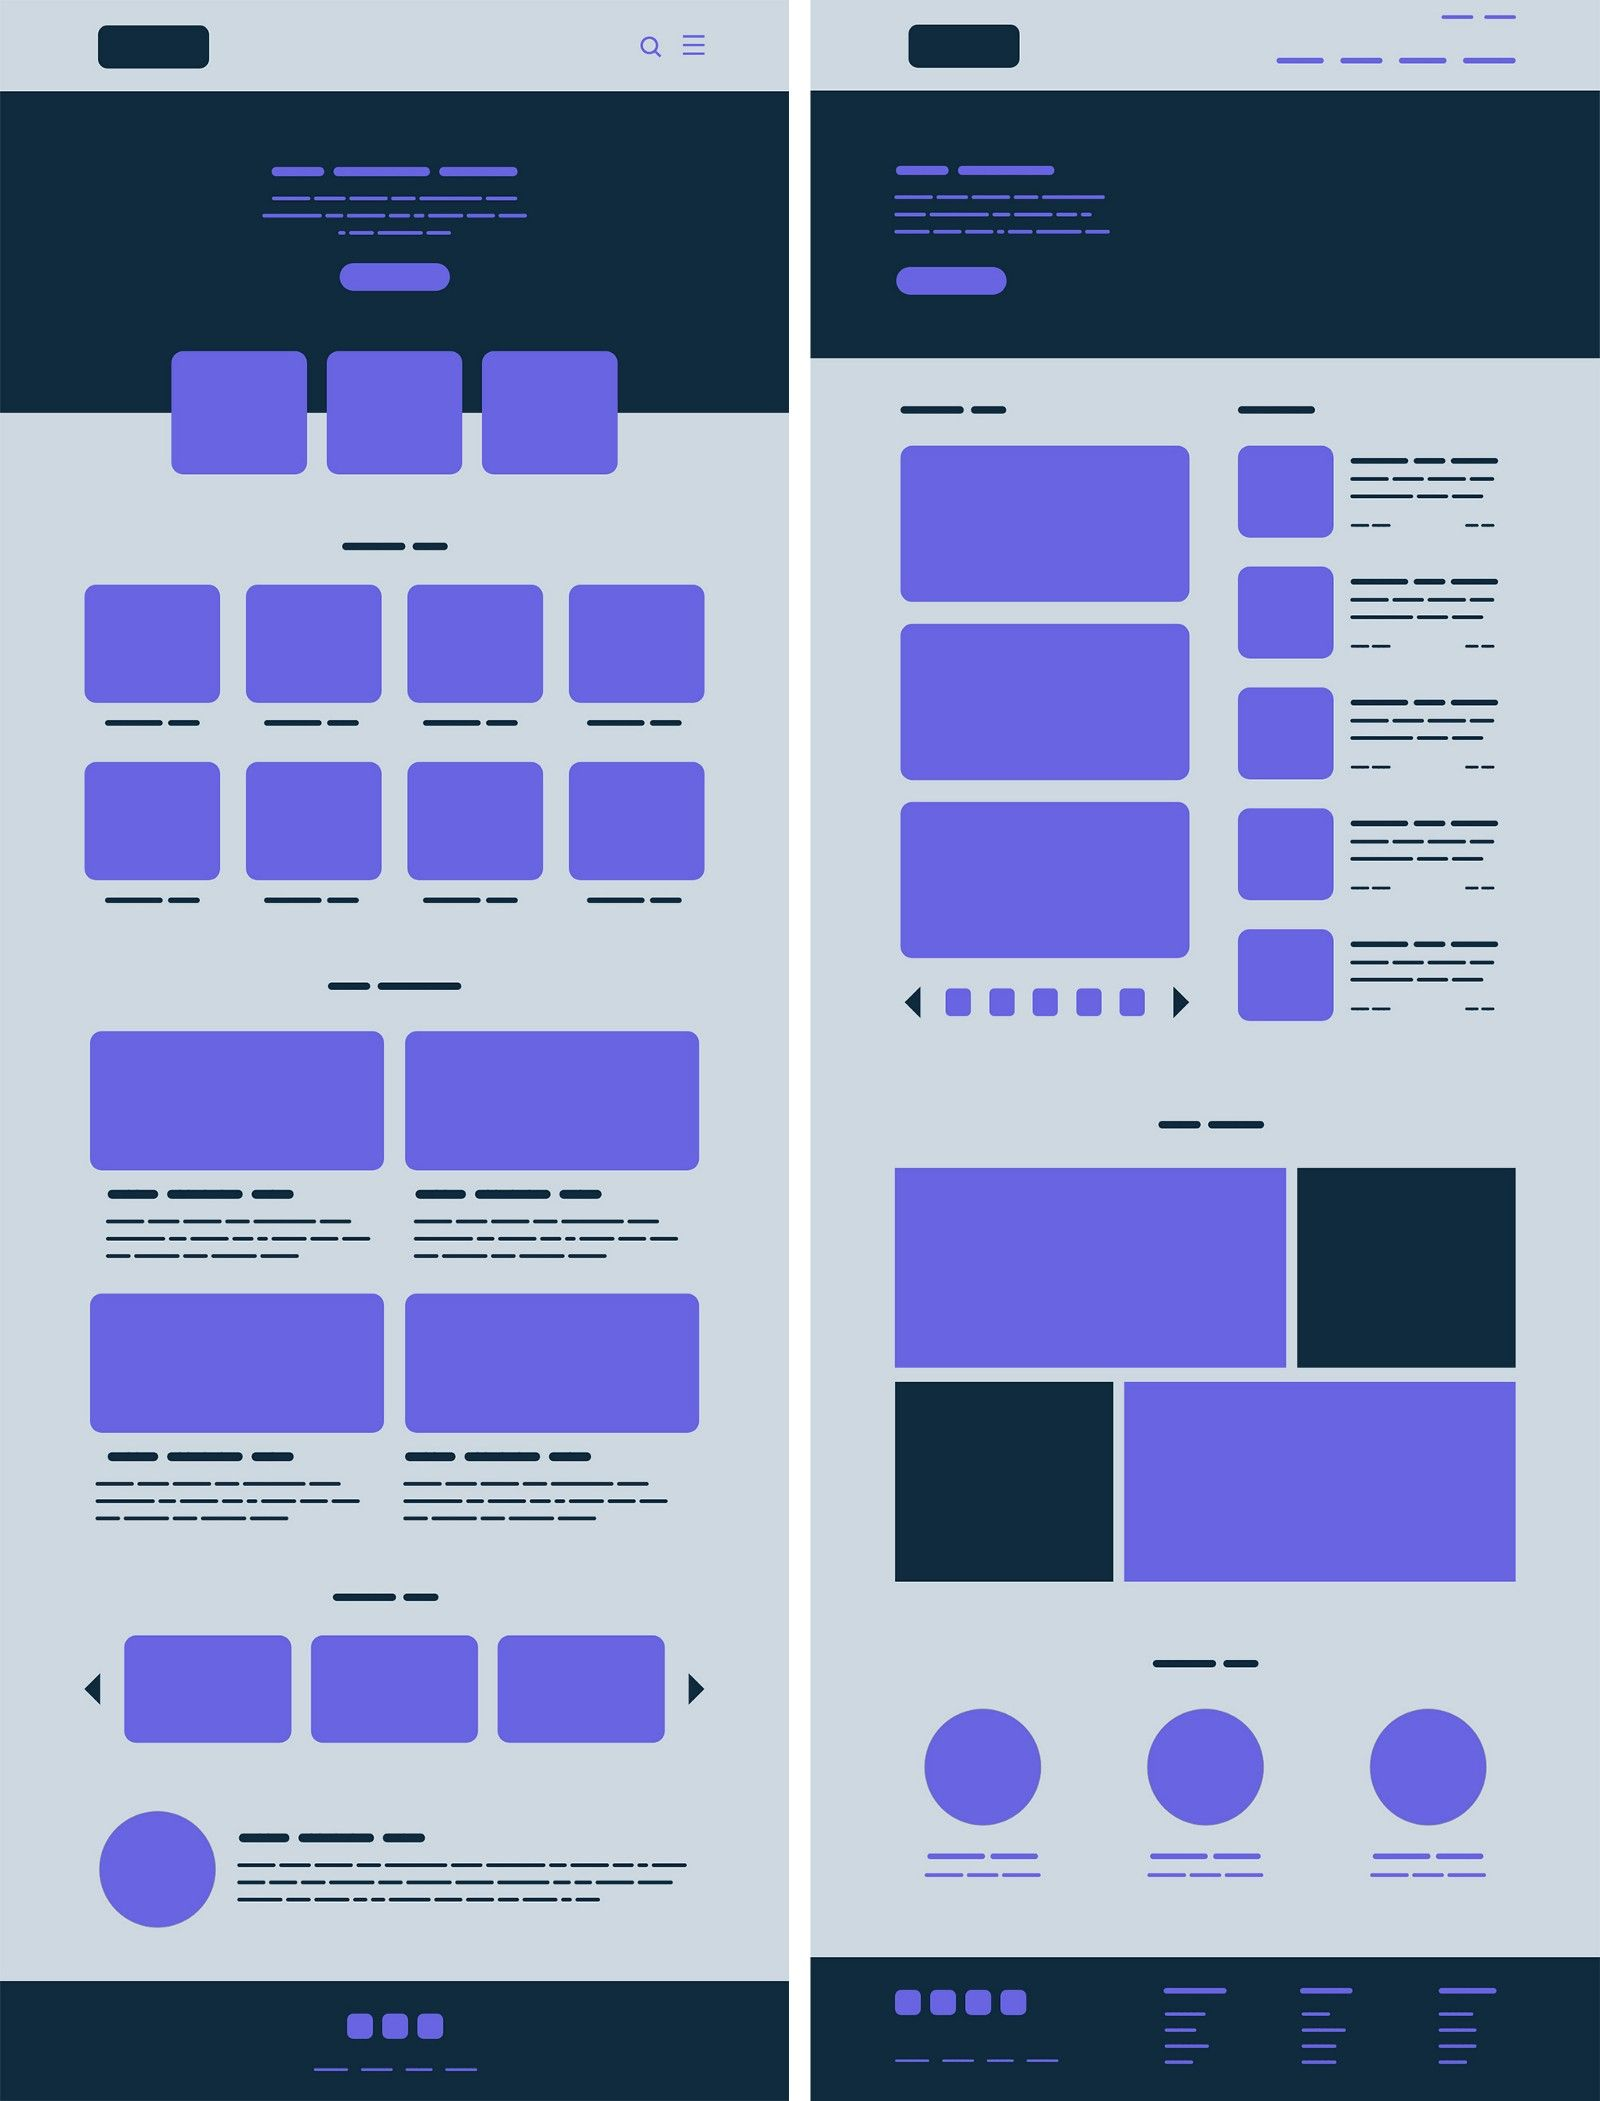 Gestalt principles in UI design.